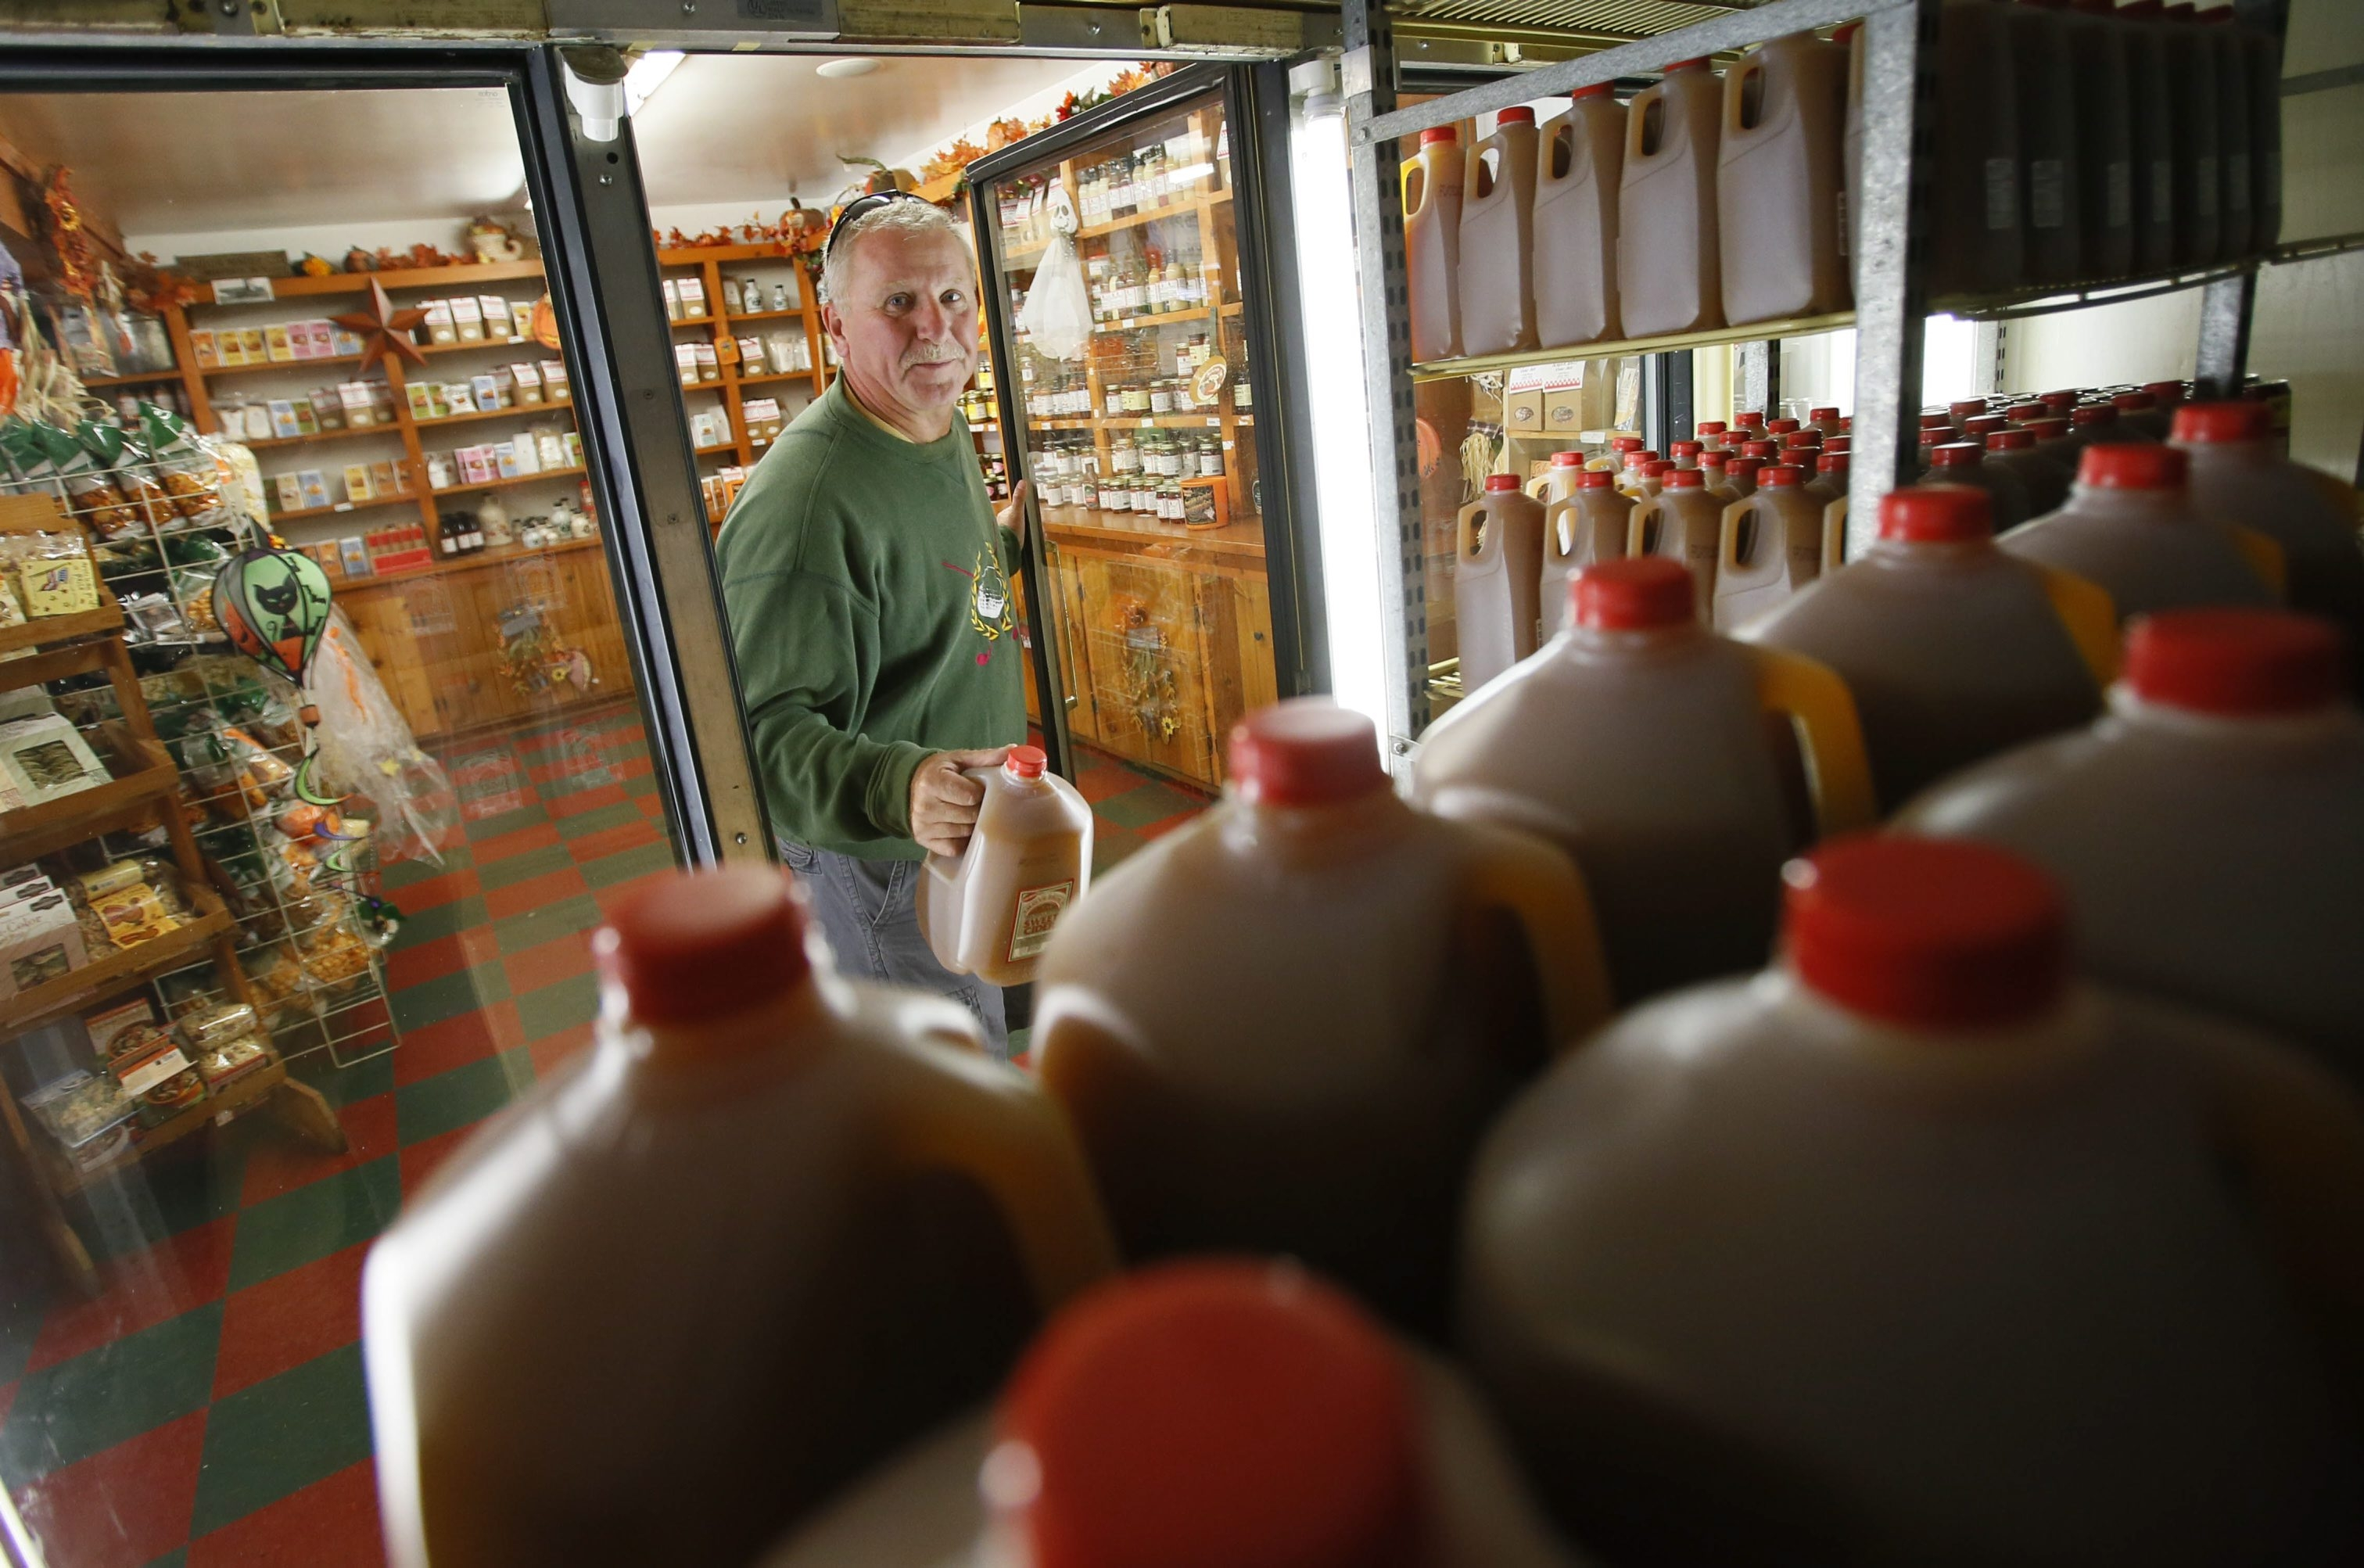 Jim Sypniewski, of West Seneca, picks up some cider from the cooler at the Mayer Brothers store in the town, perpetuating a Western New York tradition that has flourished since family patriarch Jacob Mayer established his mill there in 1852.